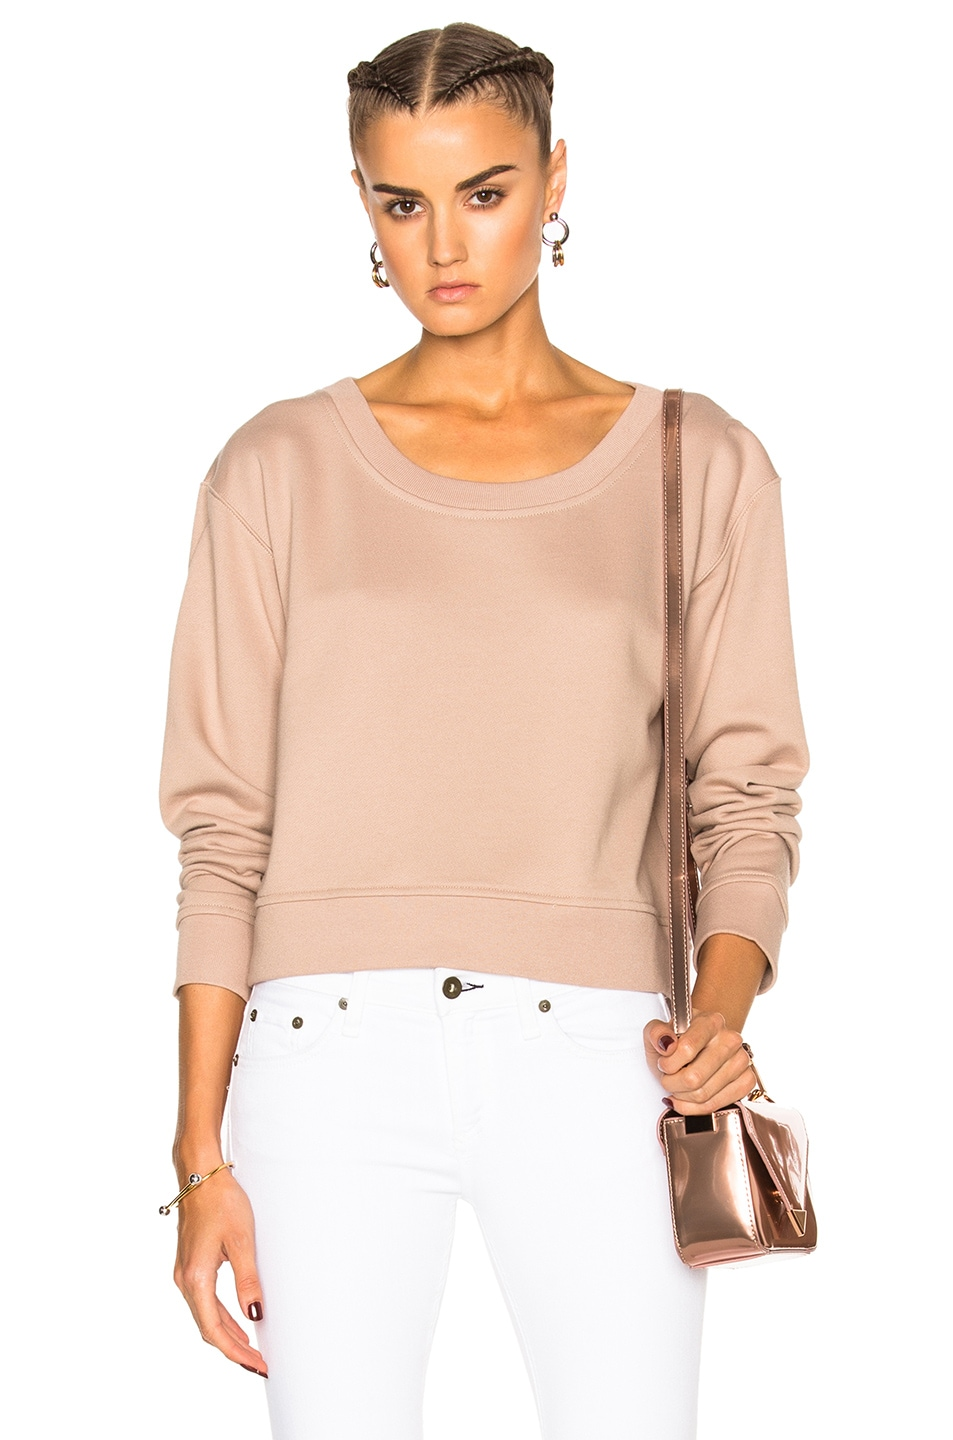 Image 1 of T by Alexander Wang Cropped Sweatshirt in Sandstone